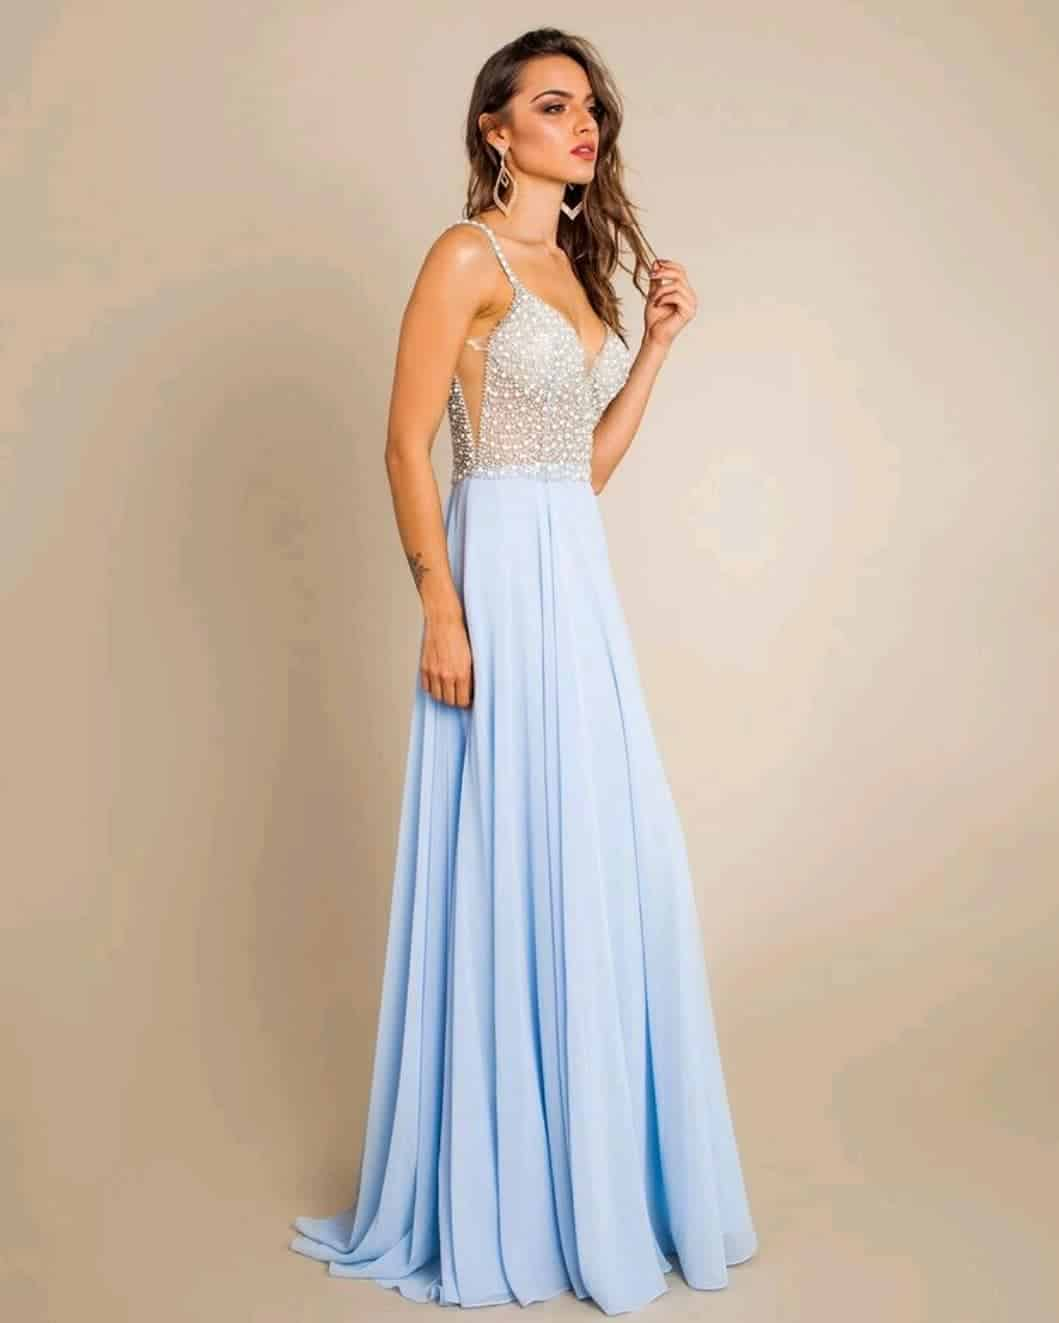 Blue glowing, Long prom dresses